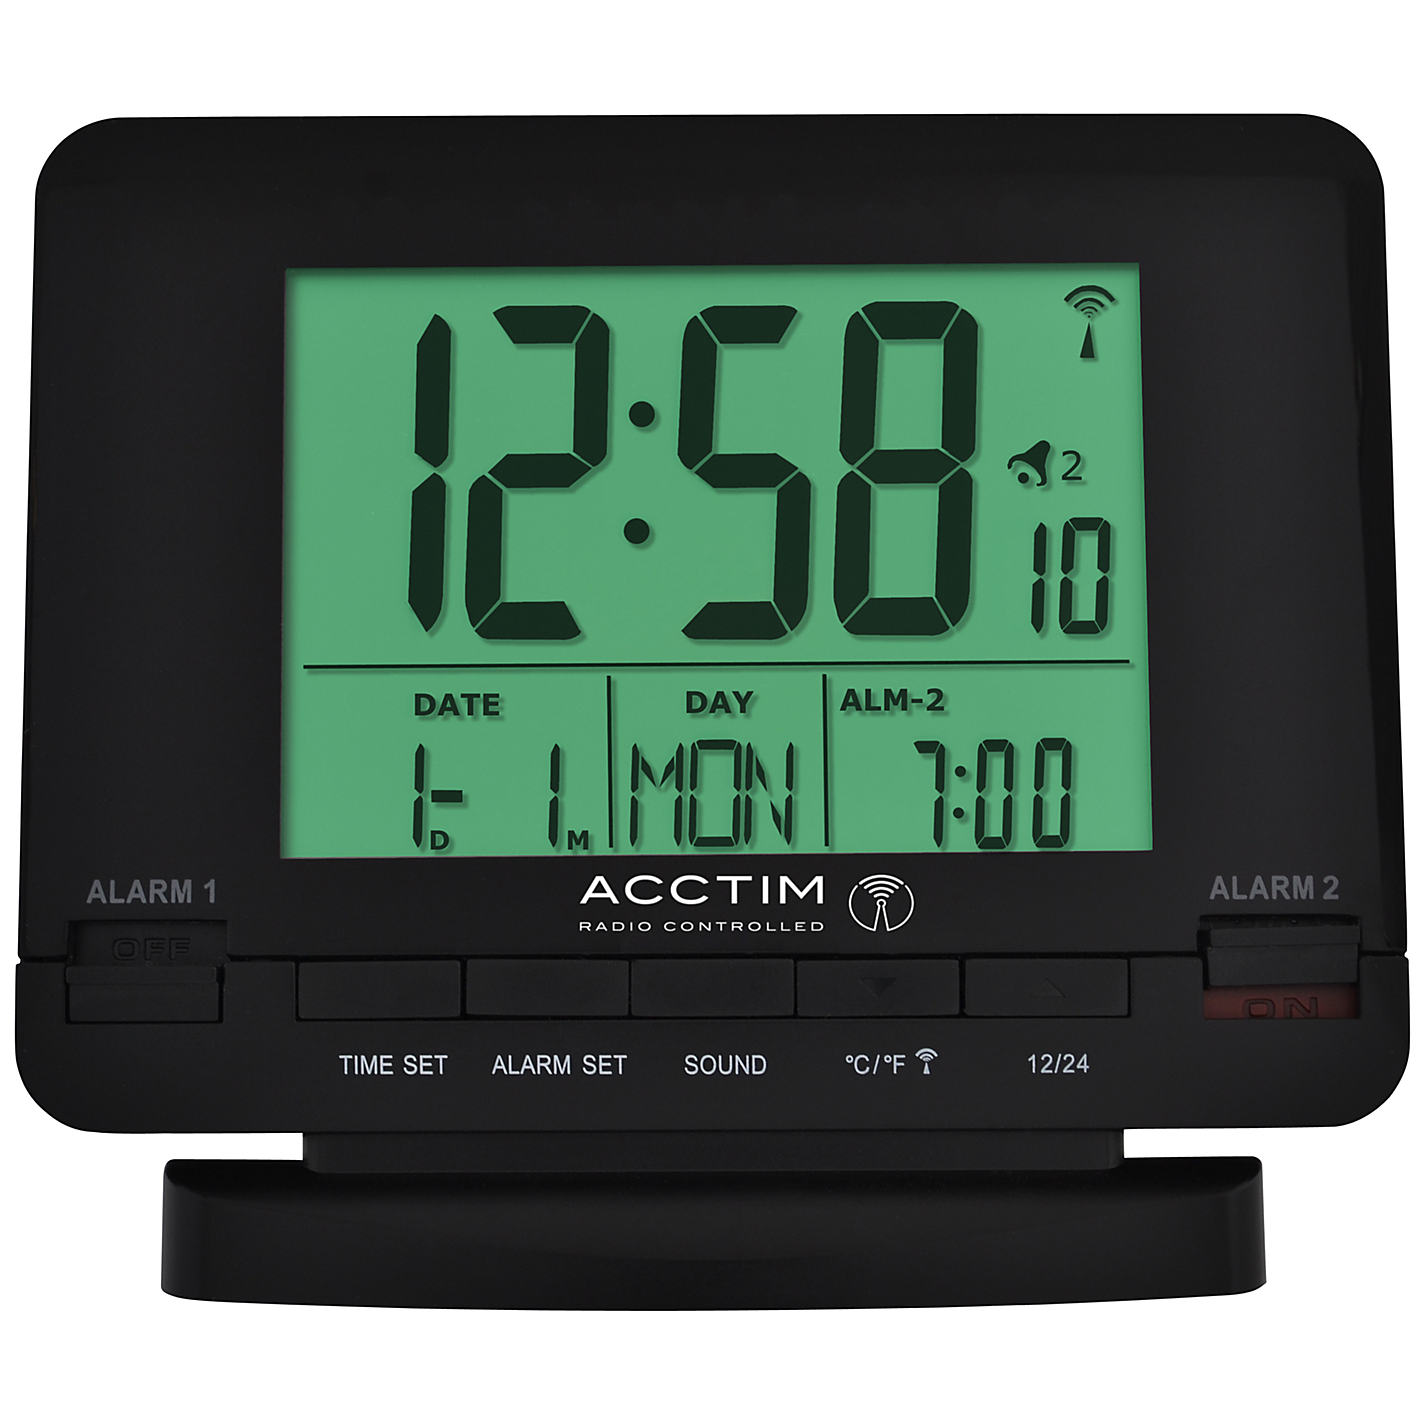 acctim radio controlled alarm clock unique alarm clock. Black Bedroom Furniture Sets. Home Design Ideas